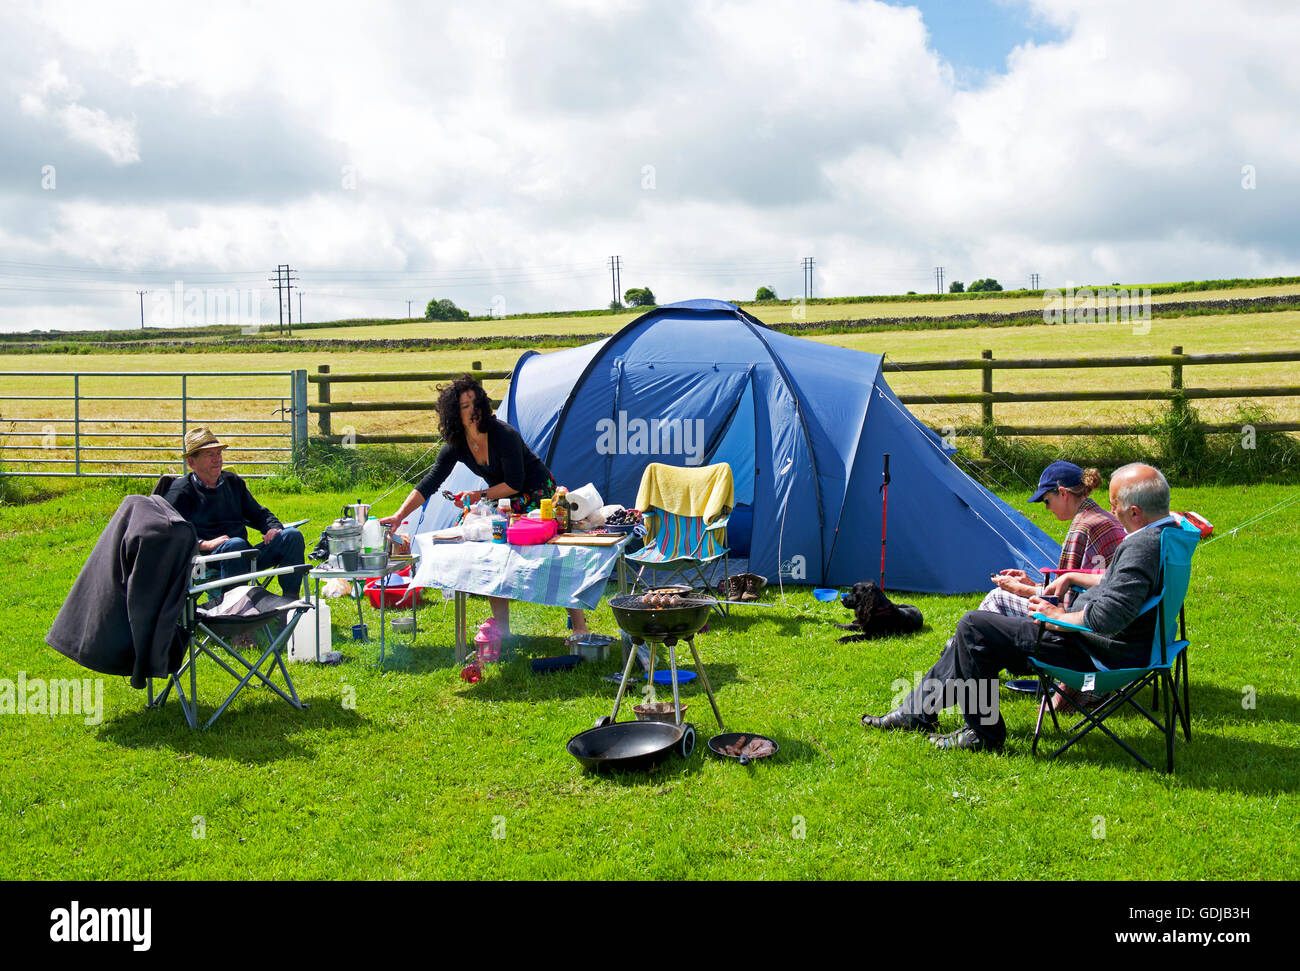 Camping in the Knotlow Farm campsite, near Flagg, Buxton, derbyshire, England UK - Stock Image